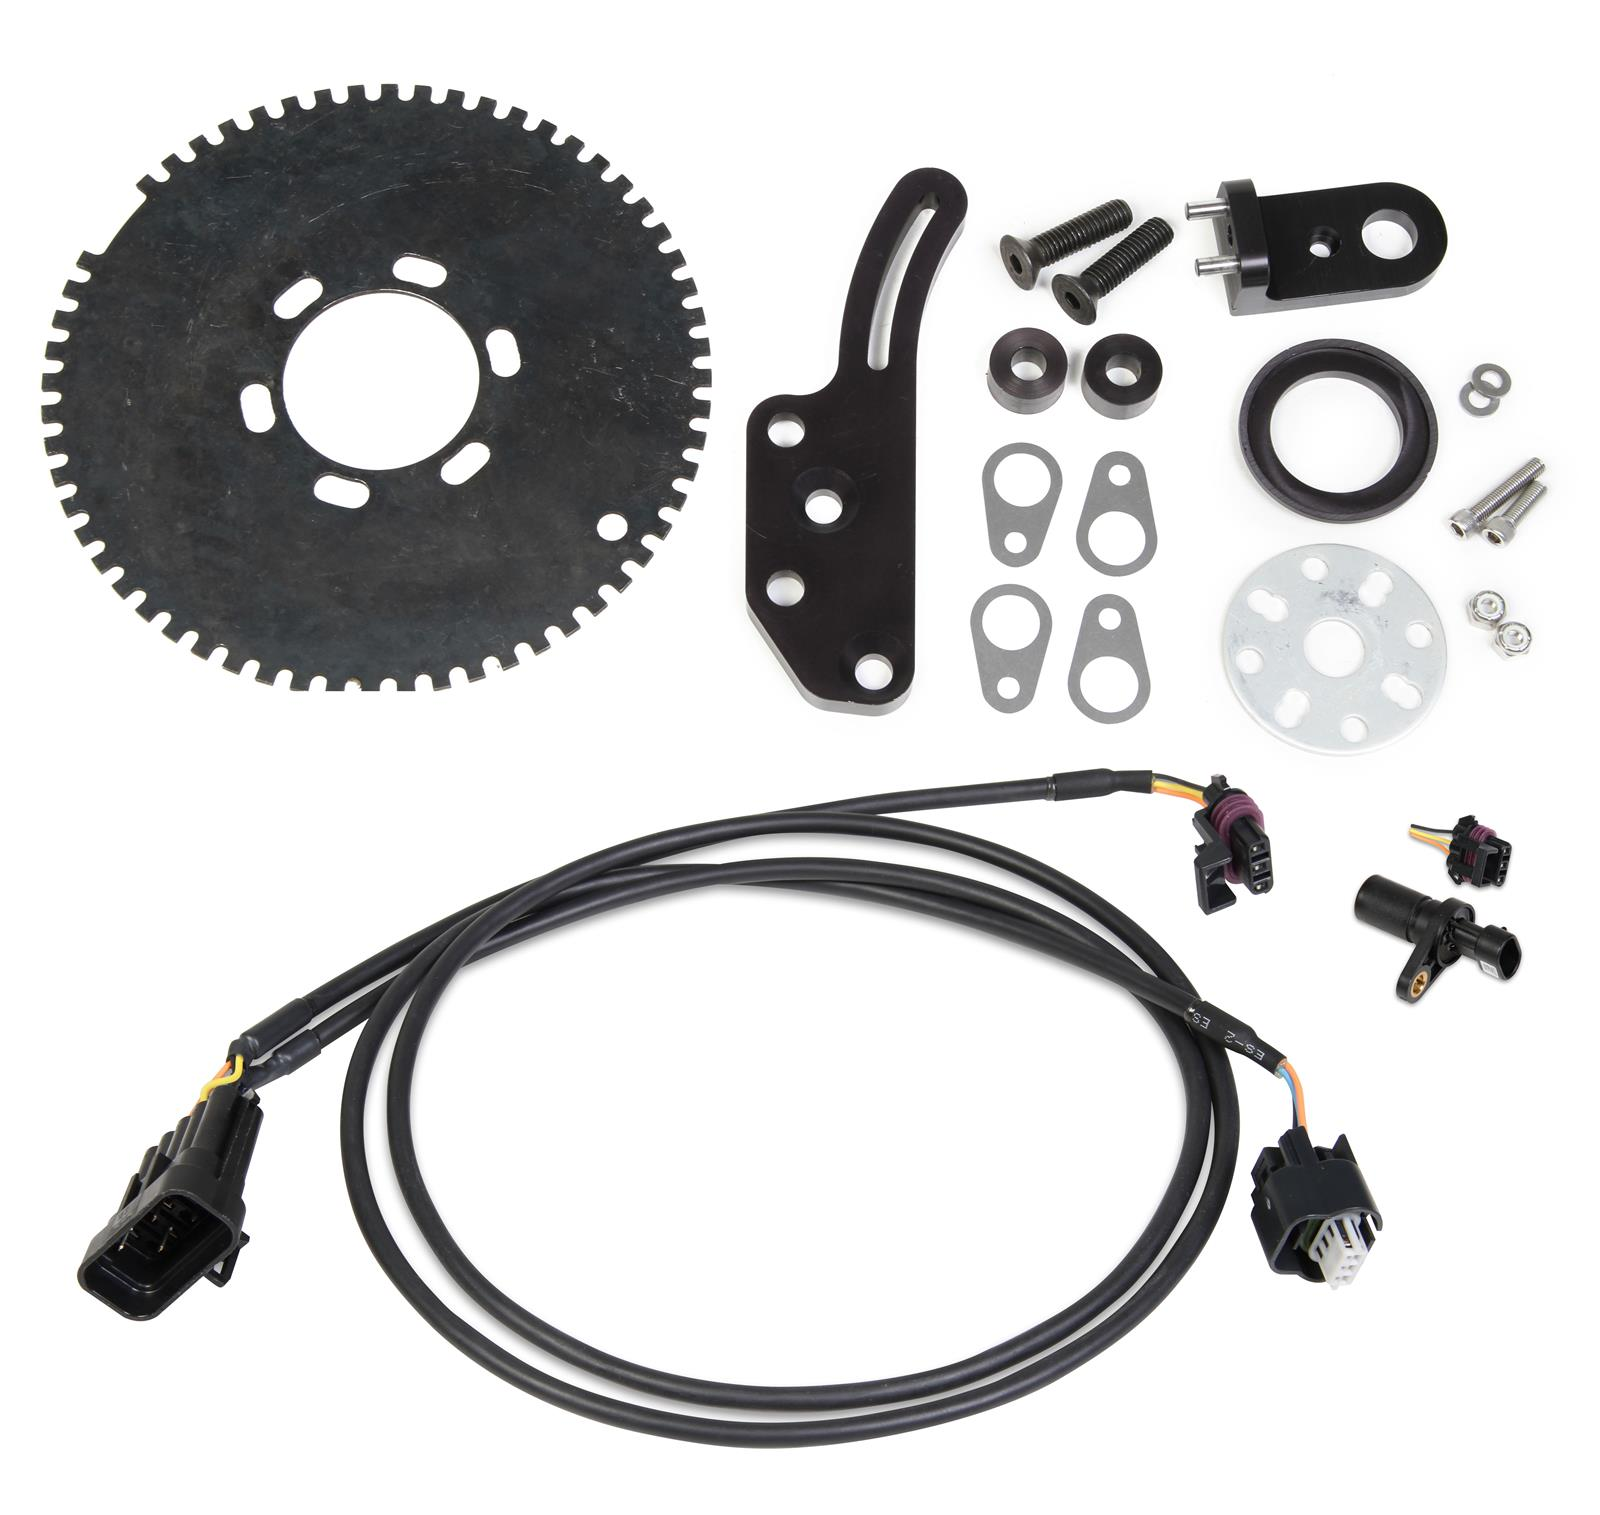 Holley DIS Crank Trigger Kits 556-111